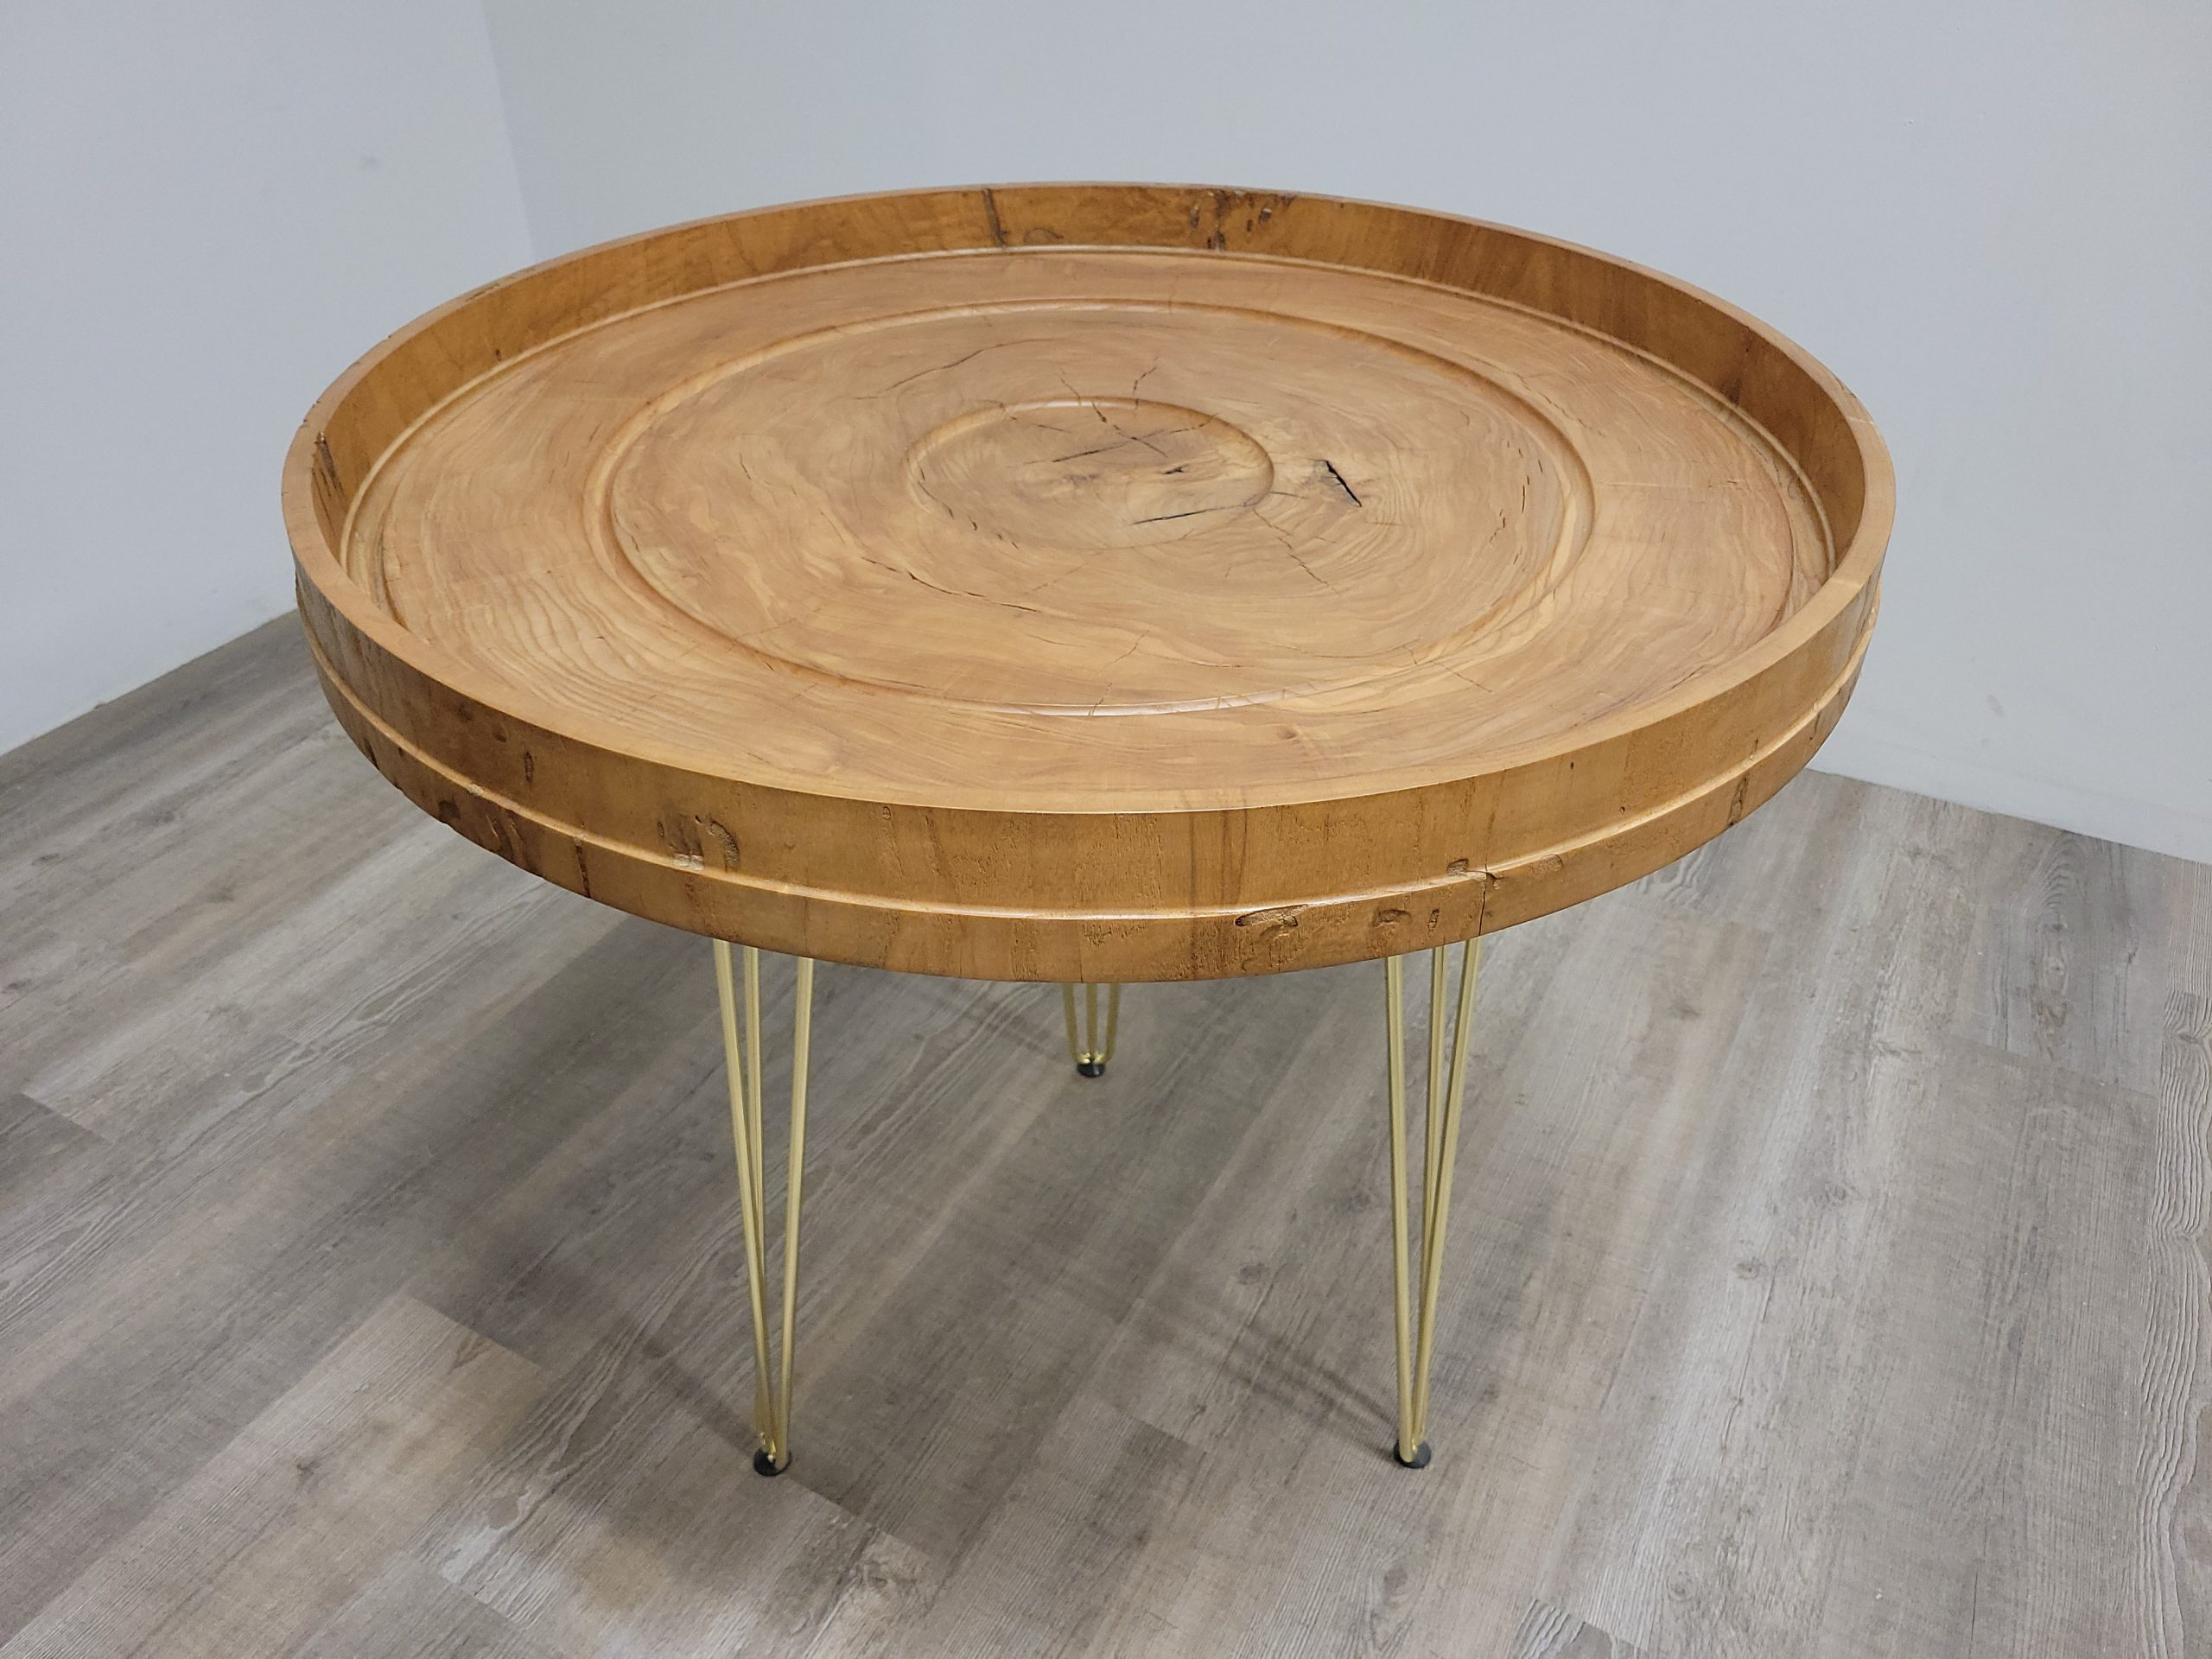 https://competitivewoodcraft.com/wp-content/uploads/2021/03/Coffee-Tables6-scaled.jpg